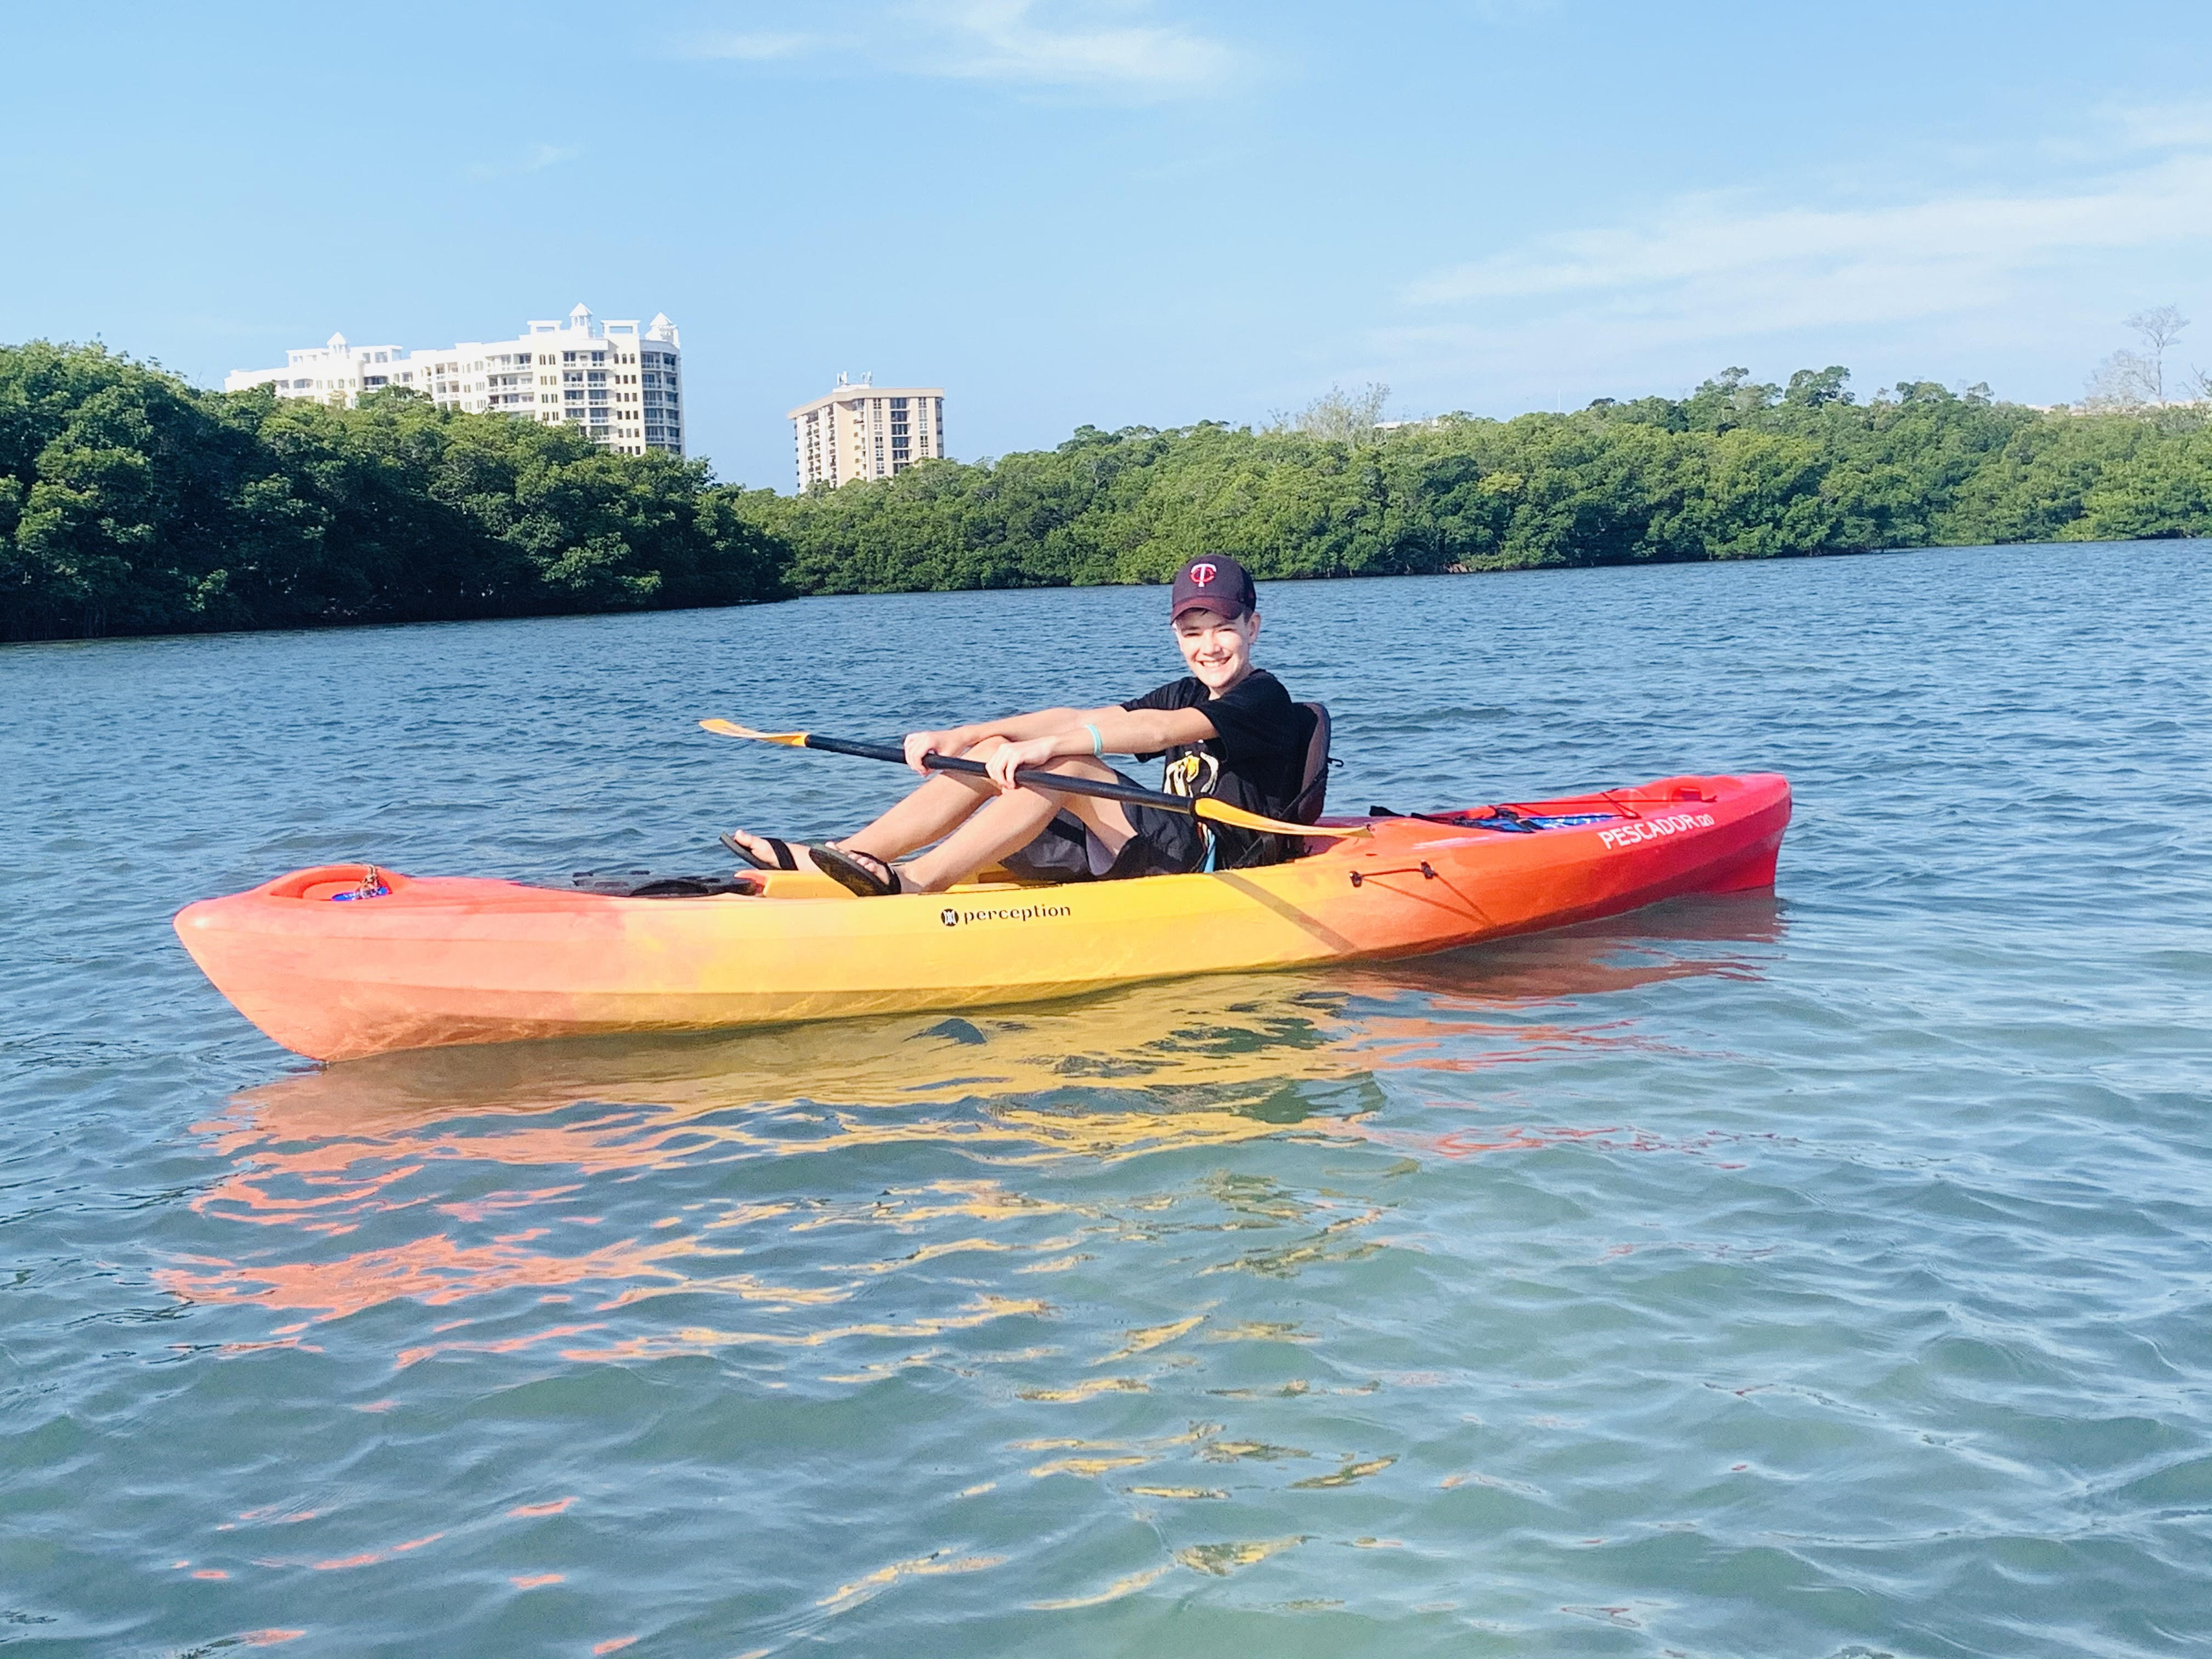 Check out our awesome guide to Sarasota Kayak Tours from Top US Family Travel Blog, Travel With A Plan!